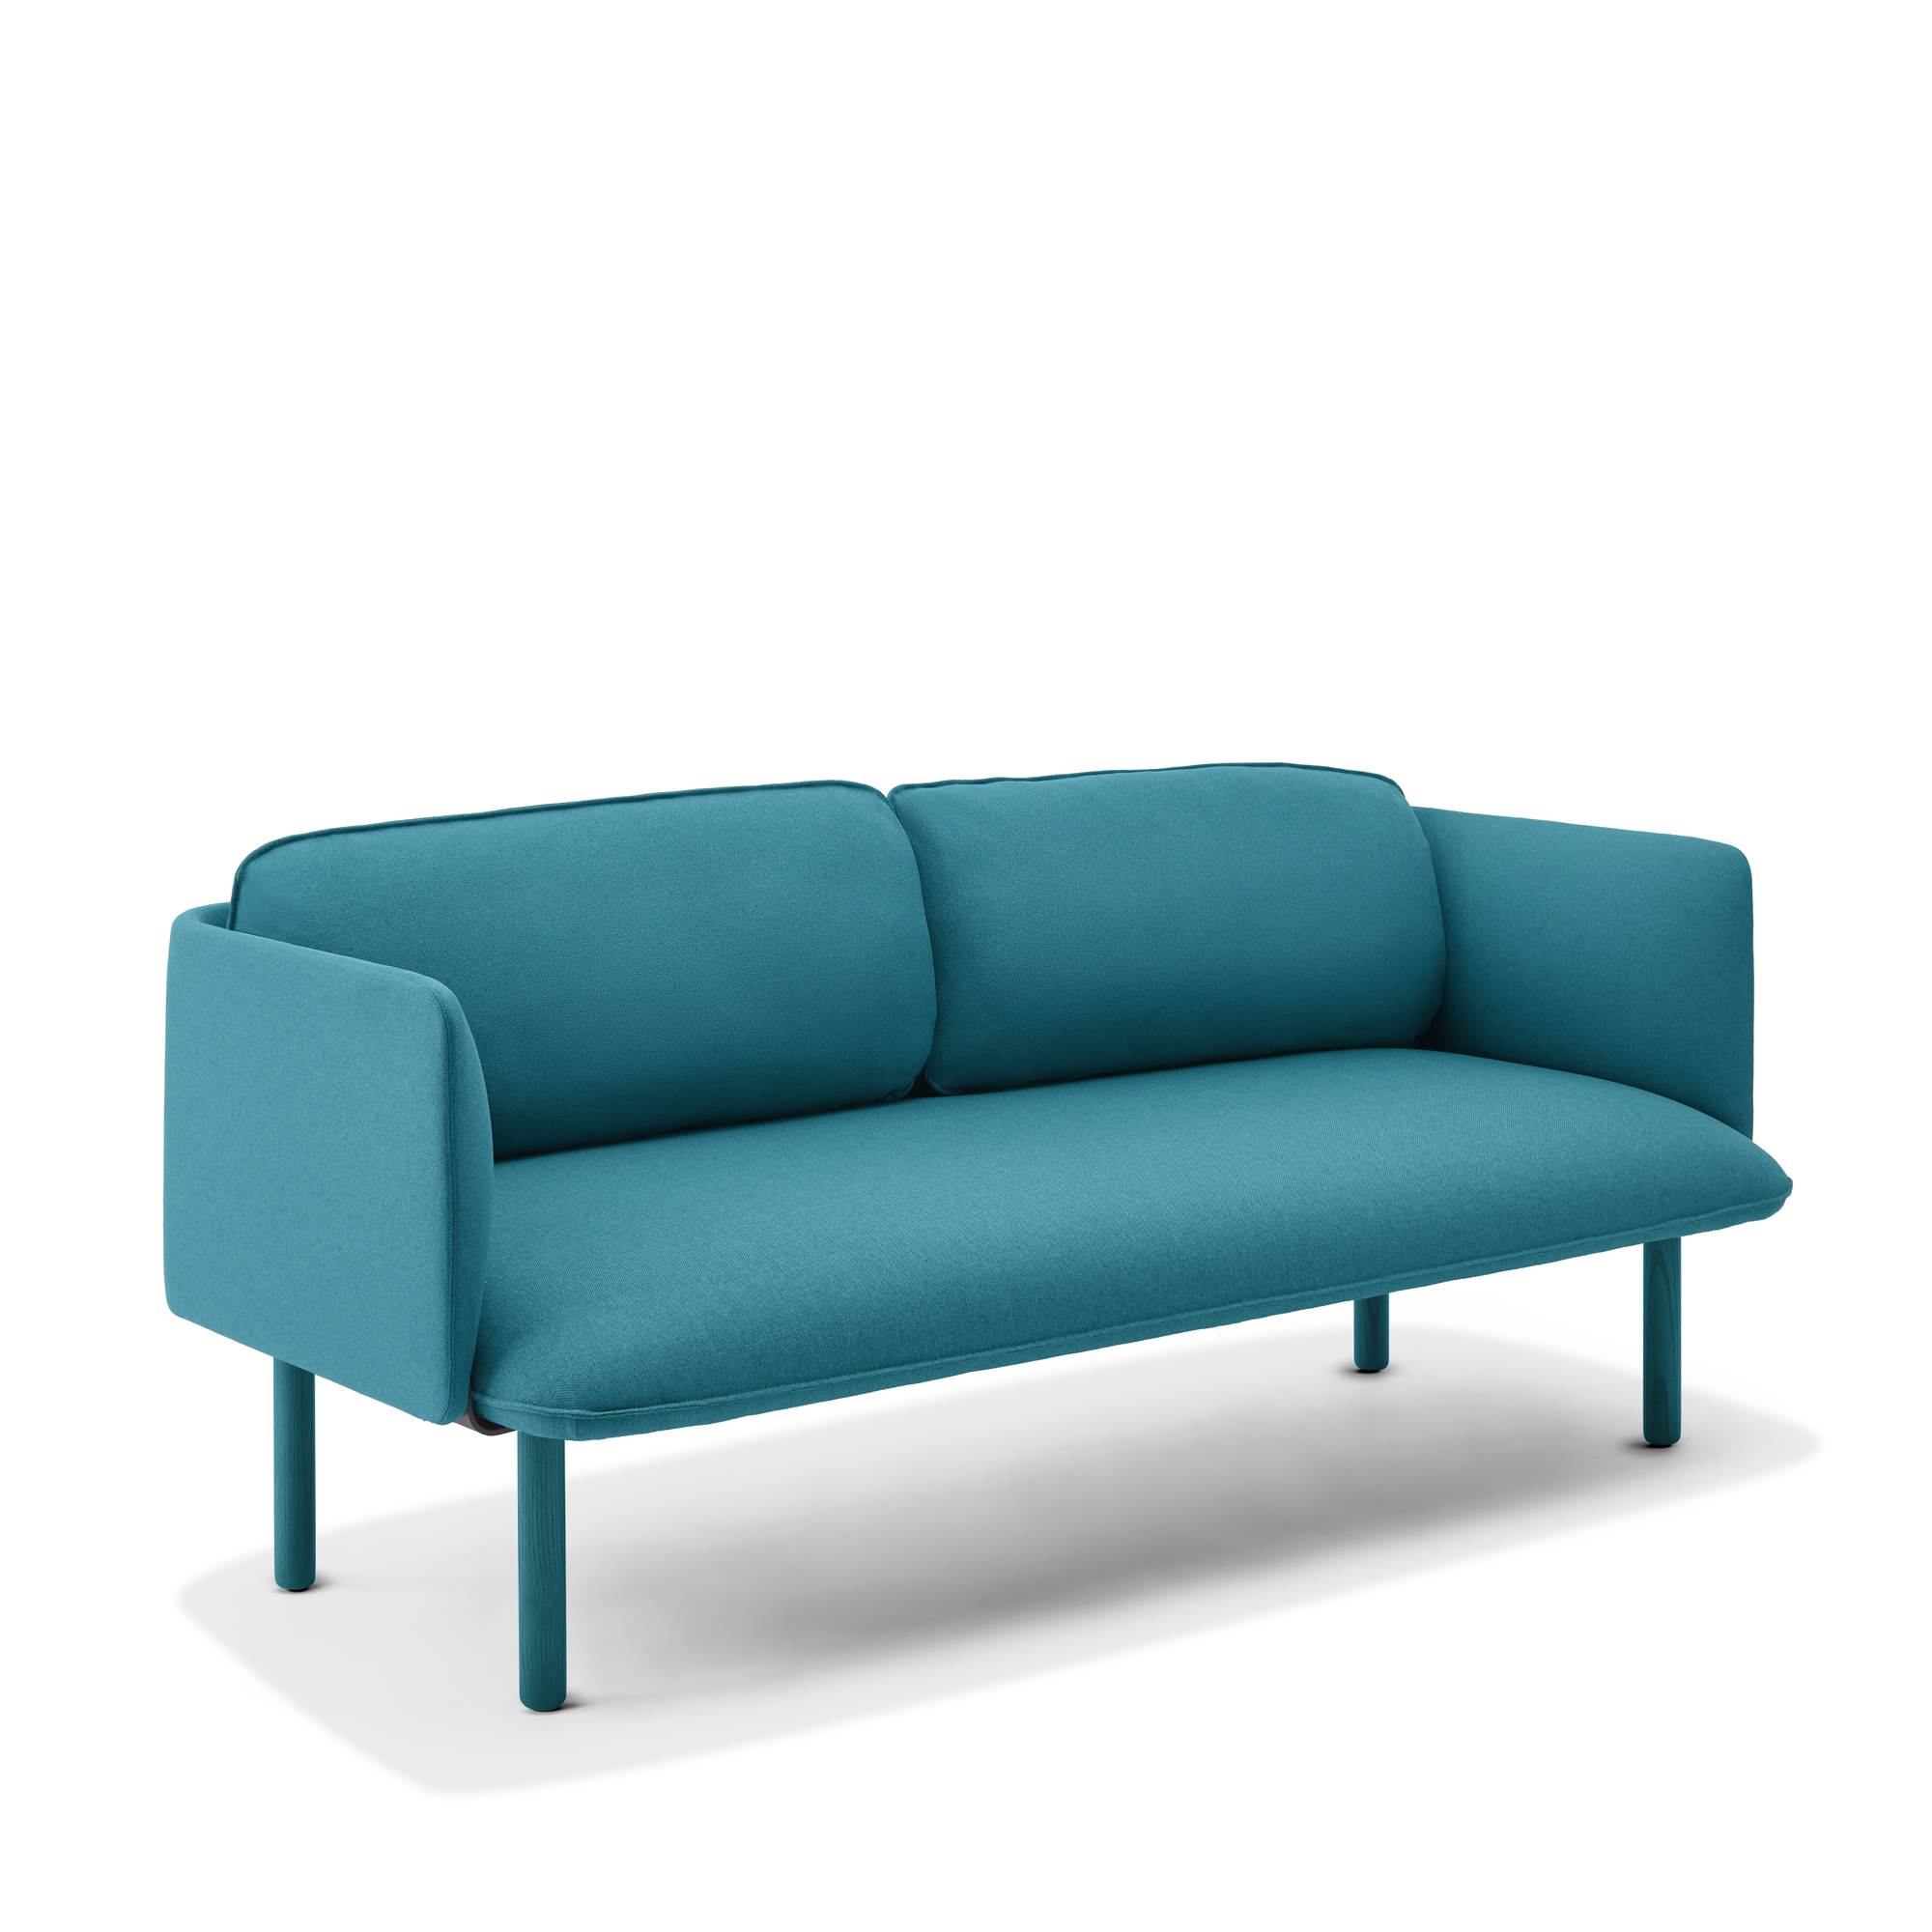 Teal QT Lounge Low Sofa | Modern Lounge Furniture | Poppin